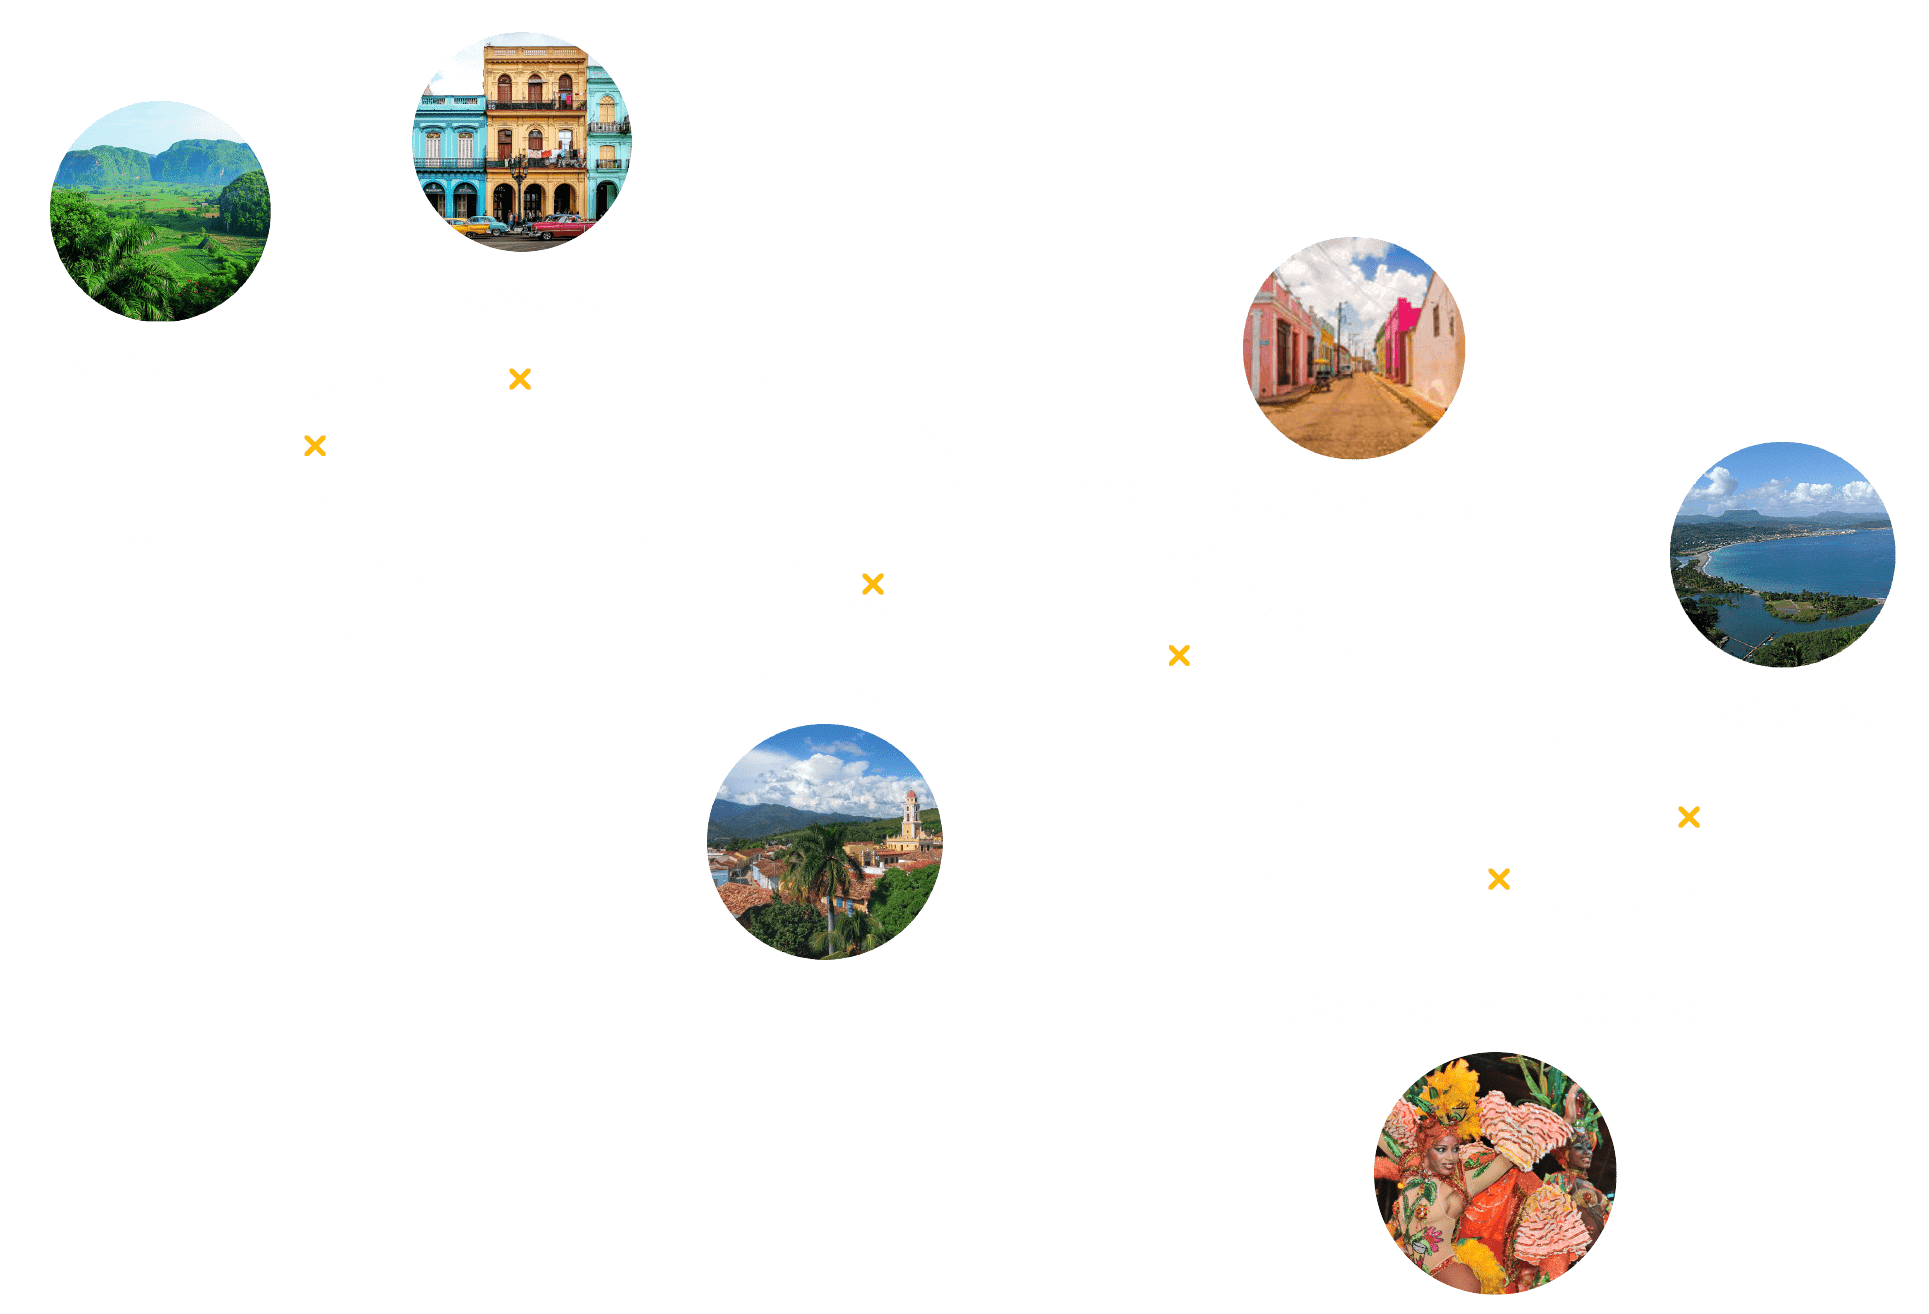 Skydream Cuba Tours departure points shown in Cuba map